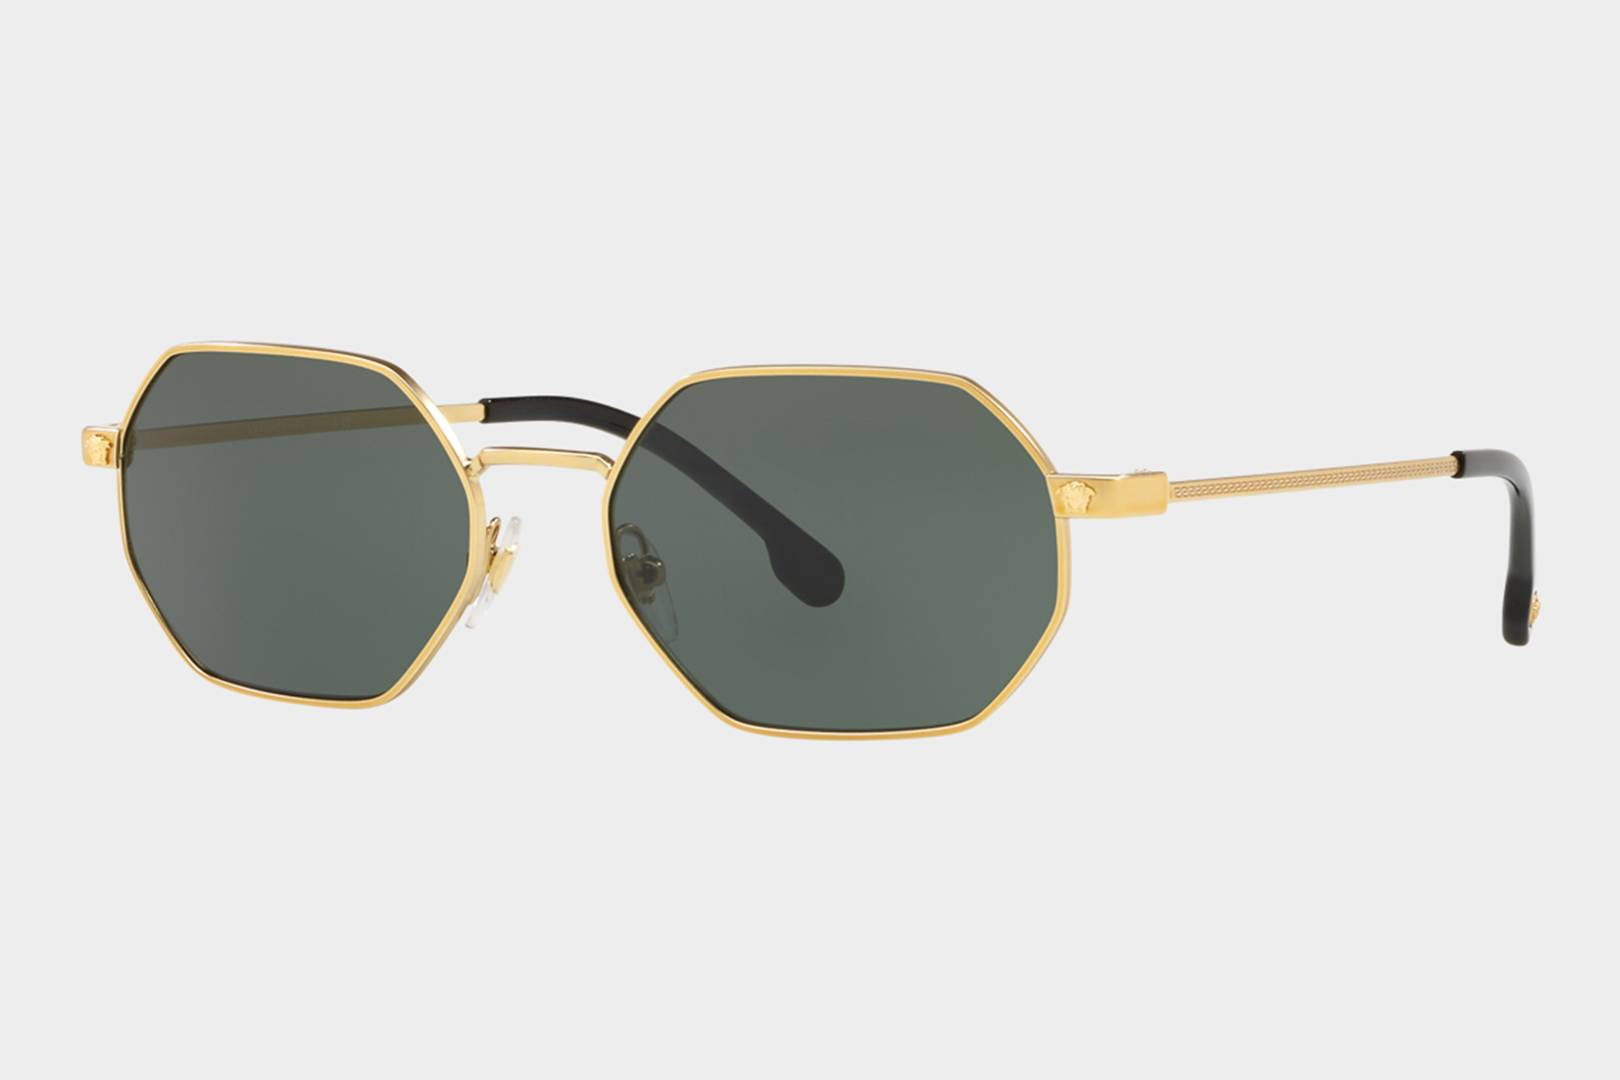 Best Sunglasses 2018 The Most Stylish New Shades For Men British Gq 3 Complete Of Collaboration Limited Edition